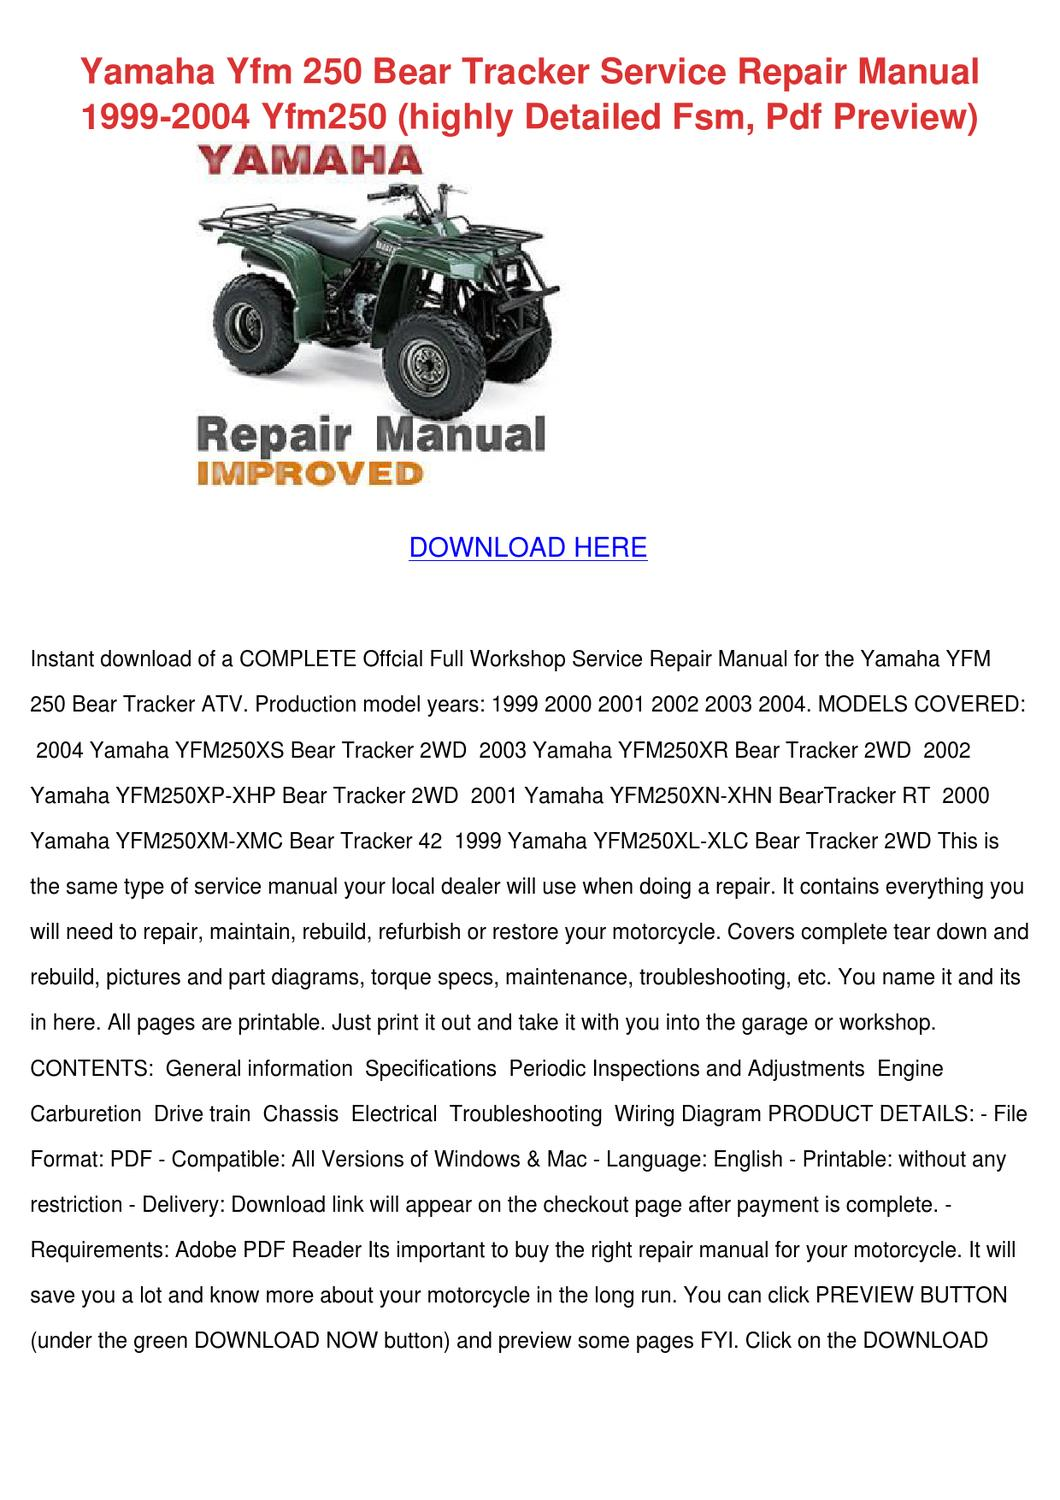 2001 Yamaha Bear Tracker Wiring Diagram | Wiring Diagram on yamaha 250 cdi wire diagram, yamaha xs650 wiring-diagram, 2002 yamaha bear tracker wiring-diagram, yamaha yfm250xl bear tracker wiring-diagram, 1999 yamaha bear tracker wiring-diagram, yamaha bear tracker 250 parts, yamaha road star wiring-diagram, yamaha 4 zinger wiring-diagram, yamaha bear tracker 250 engine diagram, yamaha r1 wiring-diagram, yamaha 350 big bear, yamaha 250 4 wheeler engine diagram, yamaha banshee wiring-diagram, yamaha dt 250 wiring diagram, 99 yamaha yfm600 wiring-diagram,